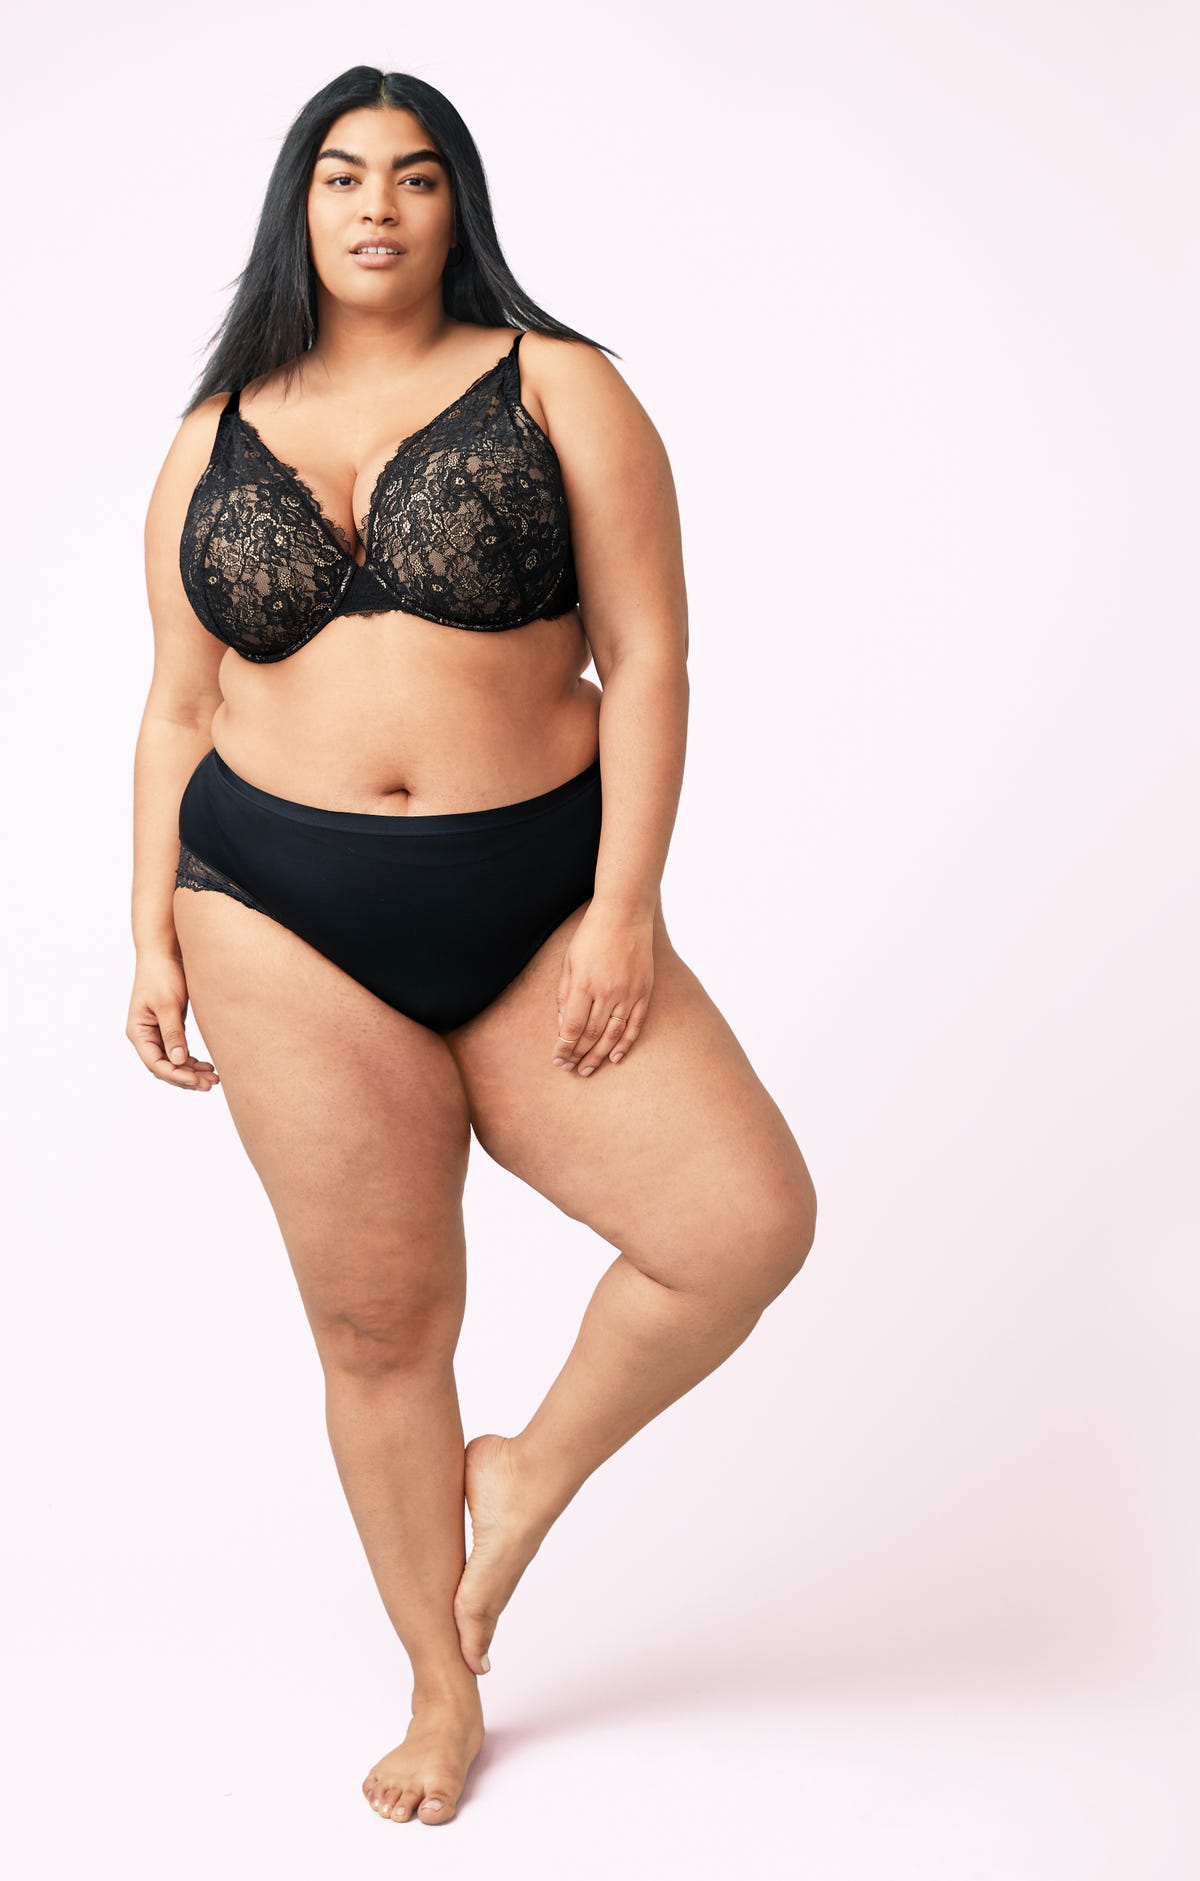 e80f2fb7ed0 Target Launches New Lingerie Lines For All Body Sizes